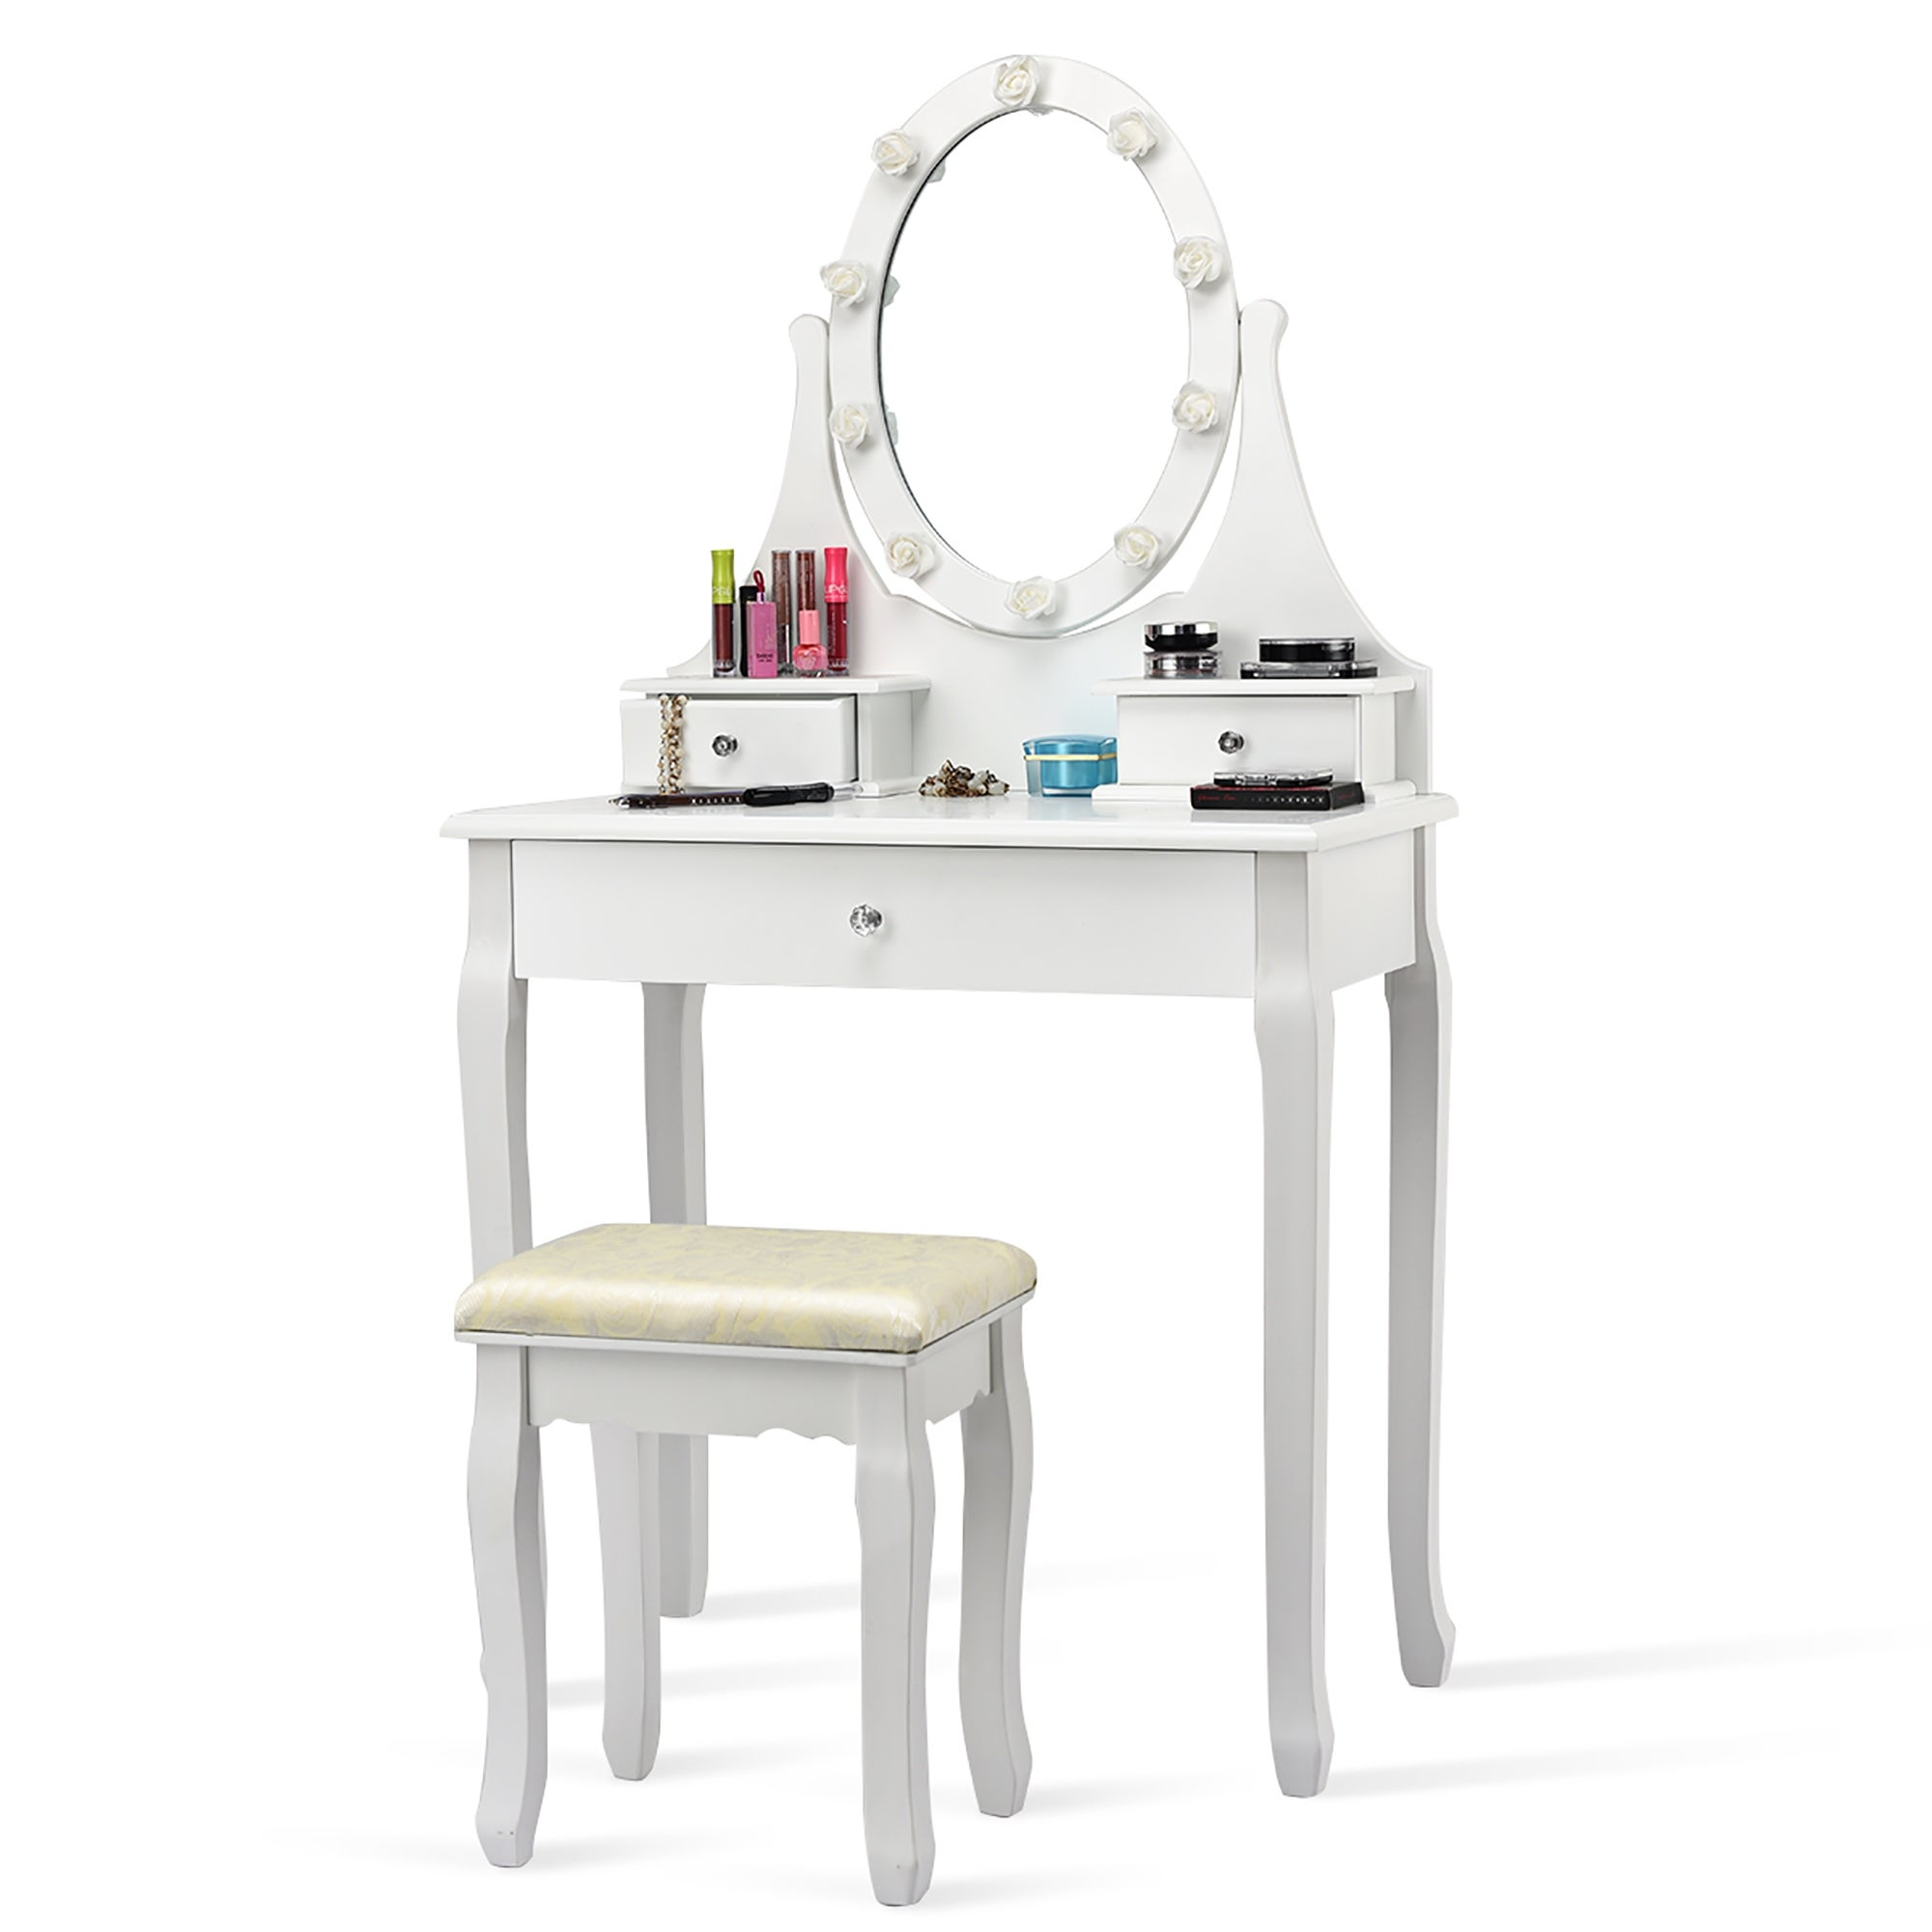 Vanity Makeup Dressing Table Set Lighted Mirror W Drawers Led Bulbs On Sale Overstock 30125937